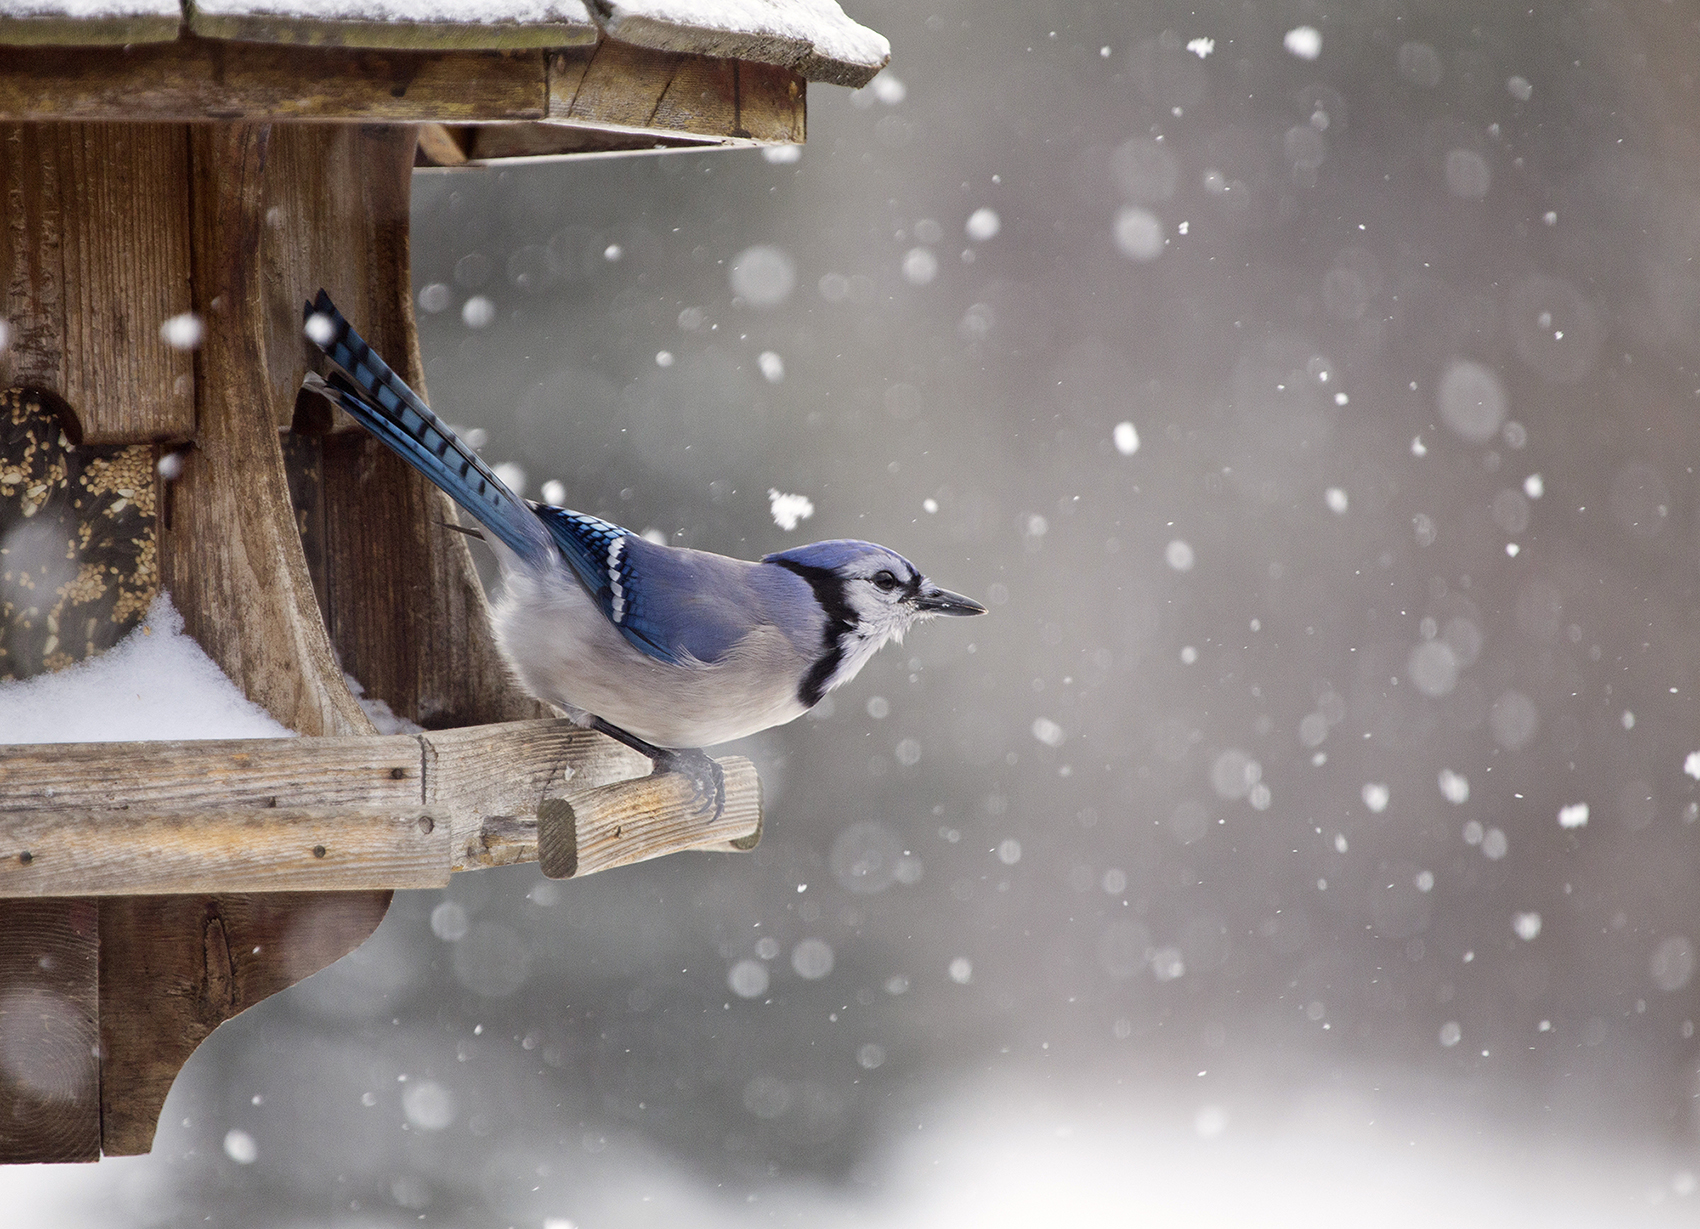 WINTER CARE FOR BIRDS